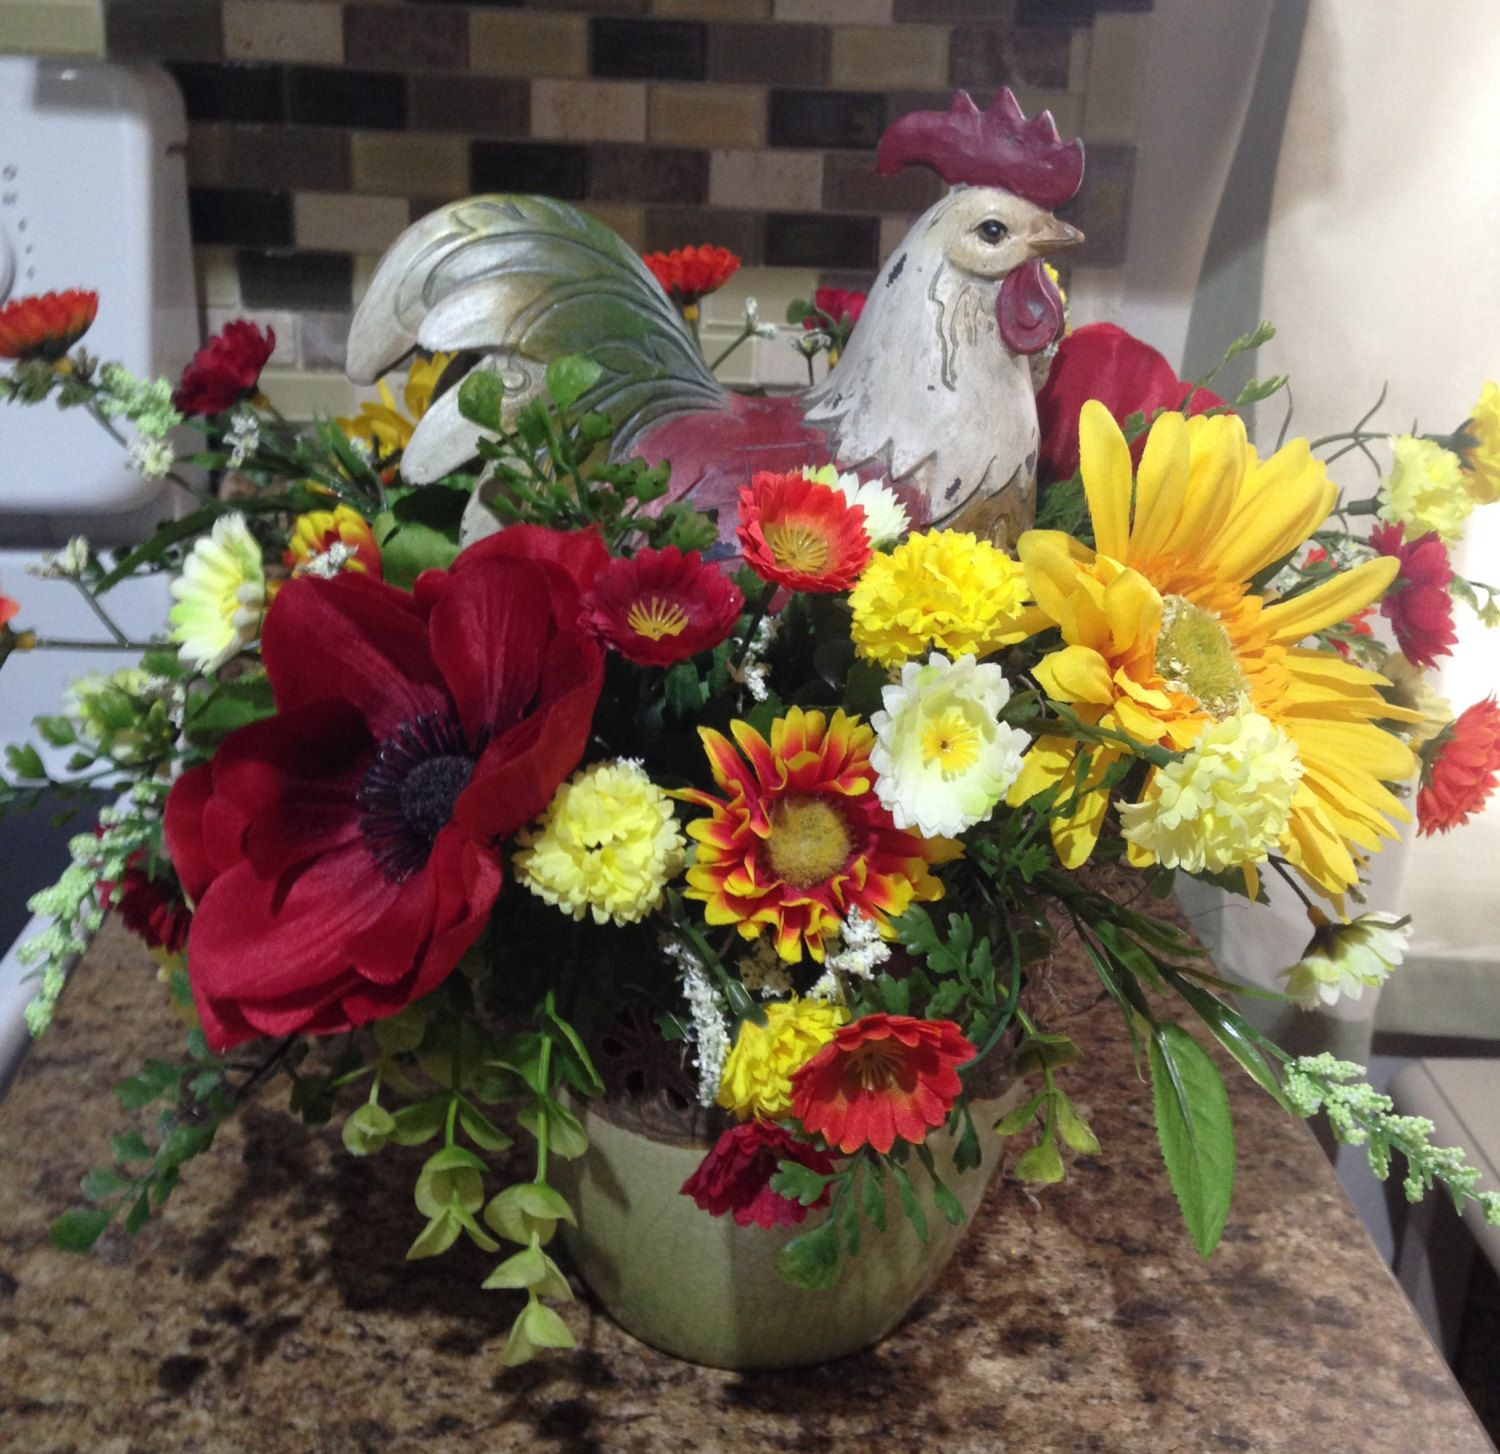 Red and yellow rooster flower arrangement by lsjhomedecor on etsy red and yellow rooster flower arrangement by lsjhomedecor on etsy mightylinksfo